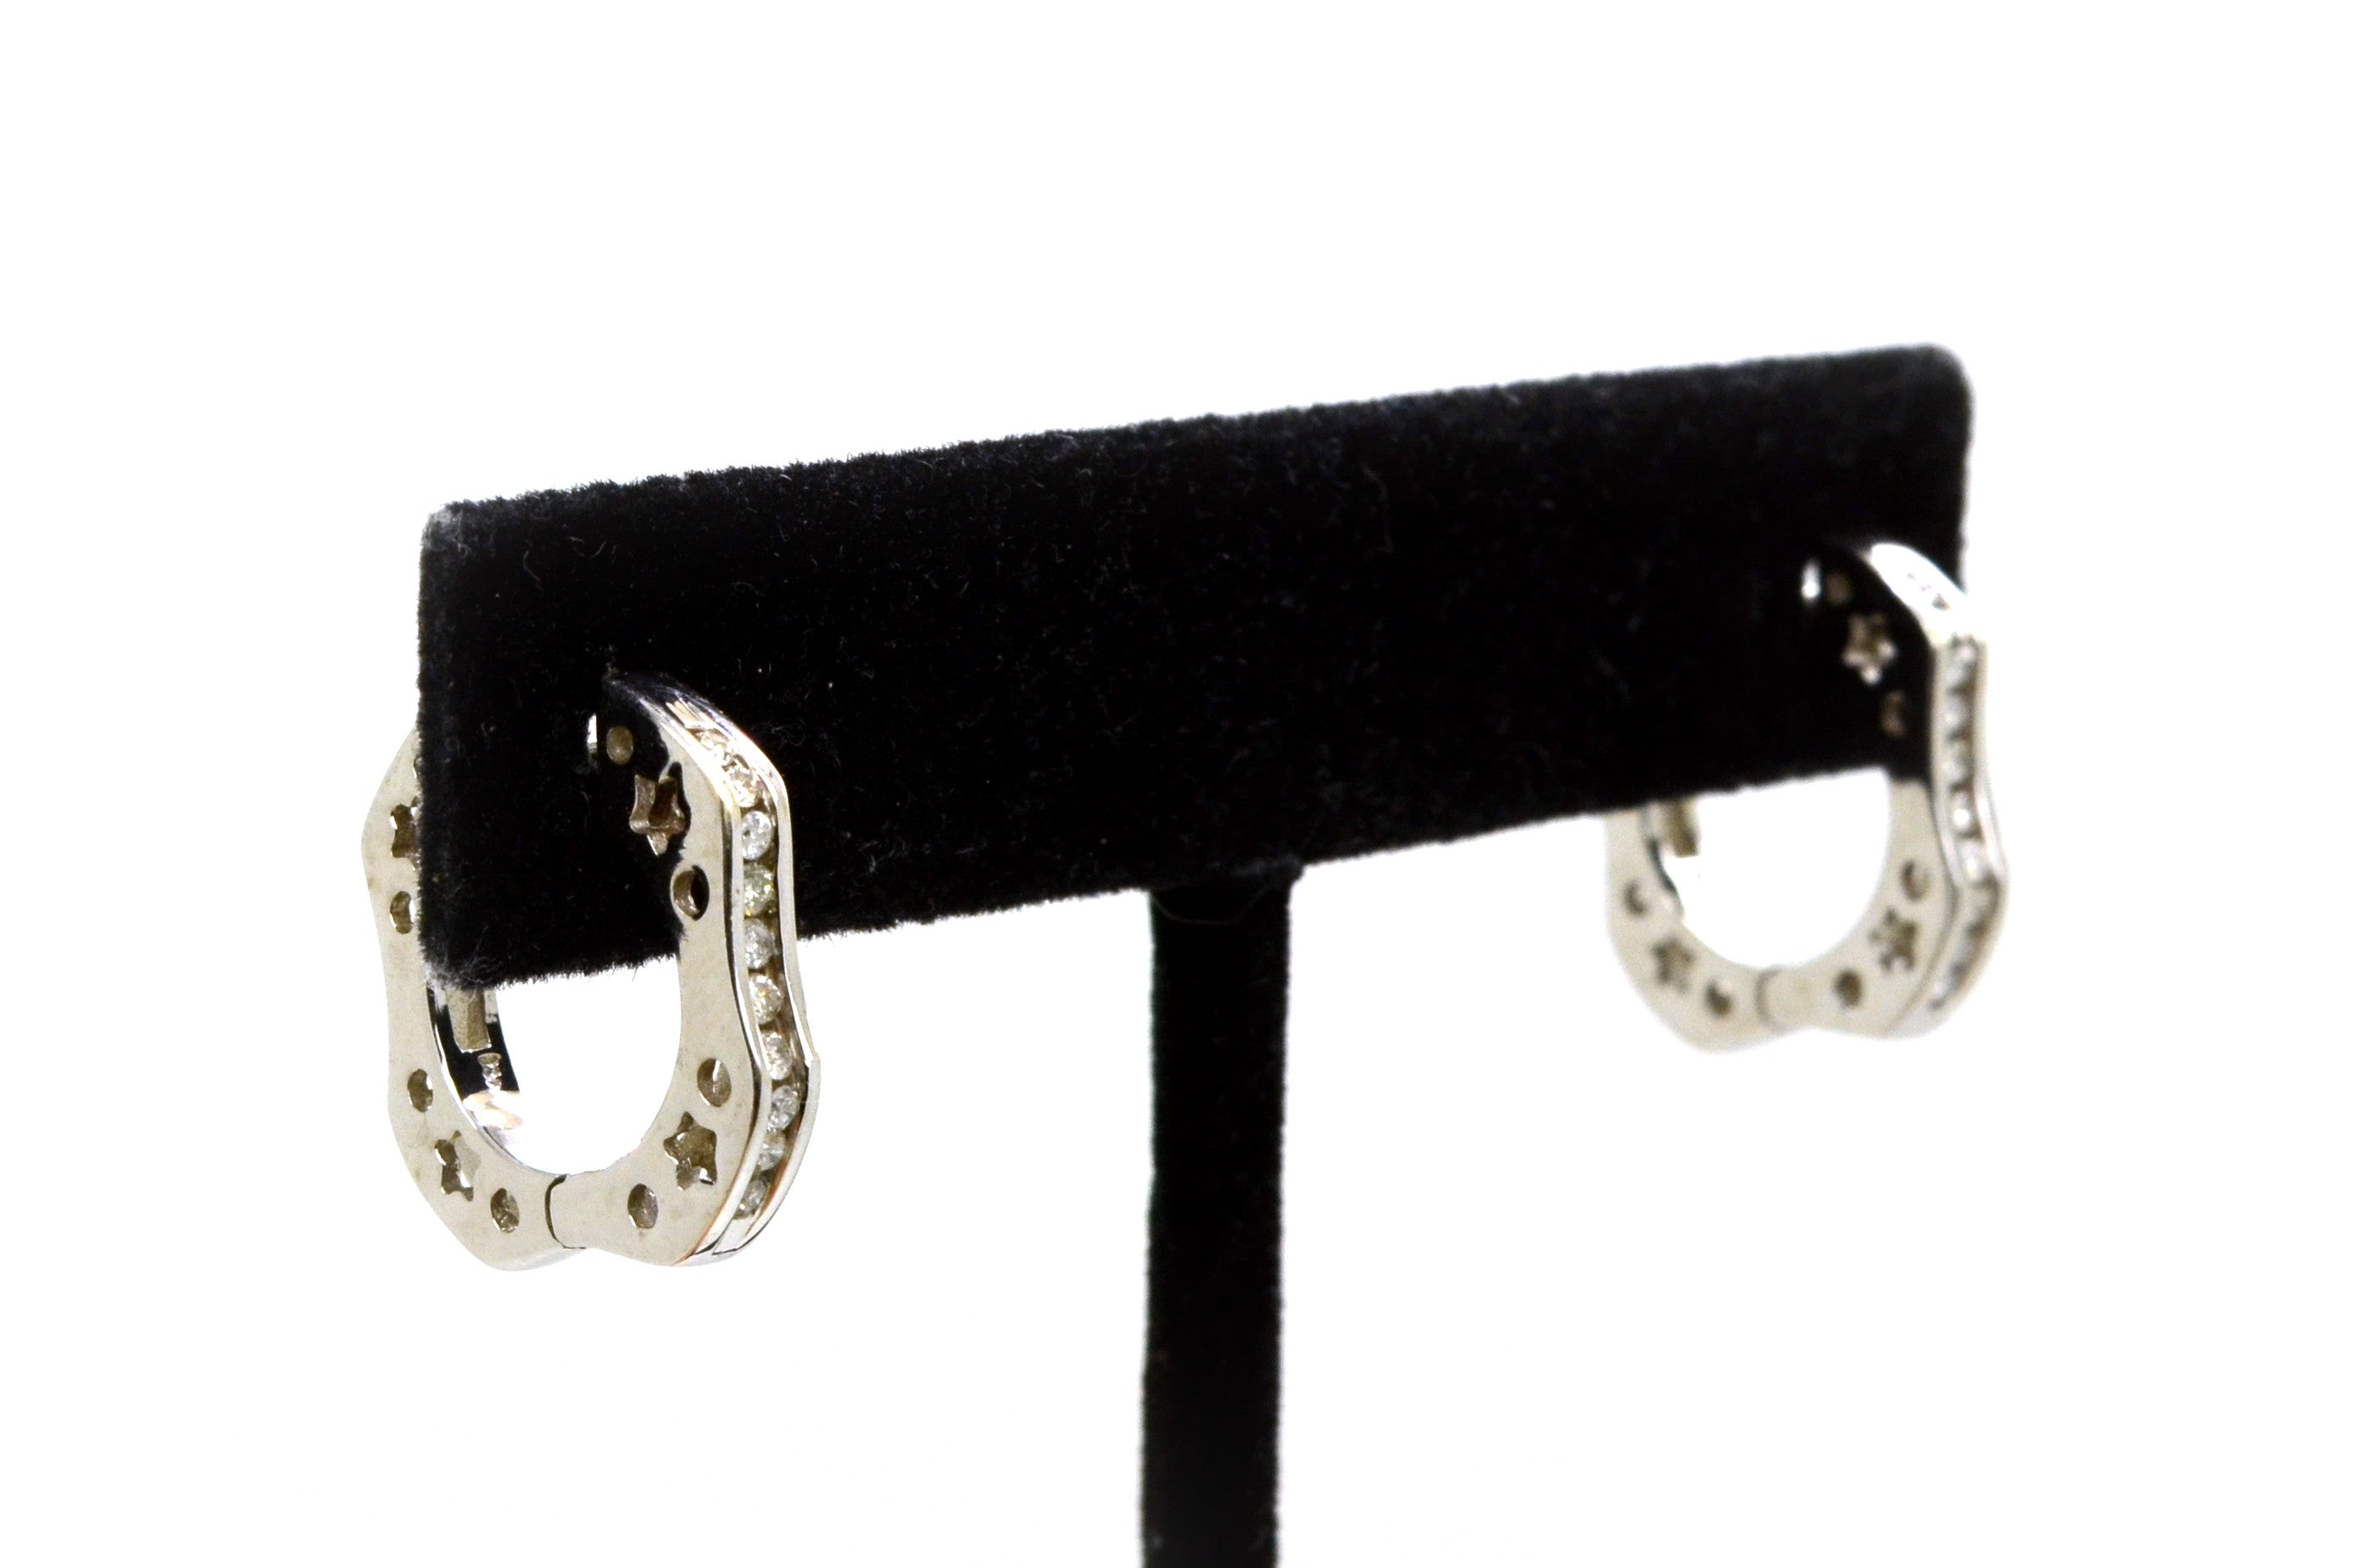 14k White Gold Channel Diamond Huggie Hoop Earrings - 17 mm Drop - .25 ct. total